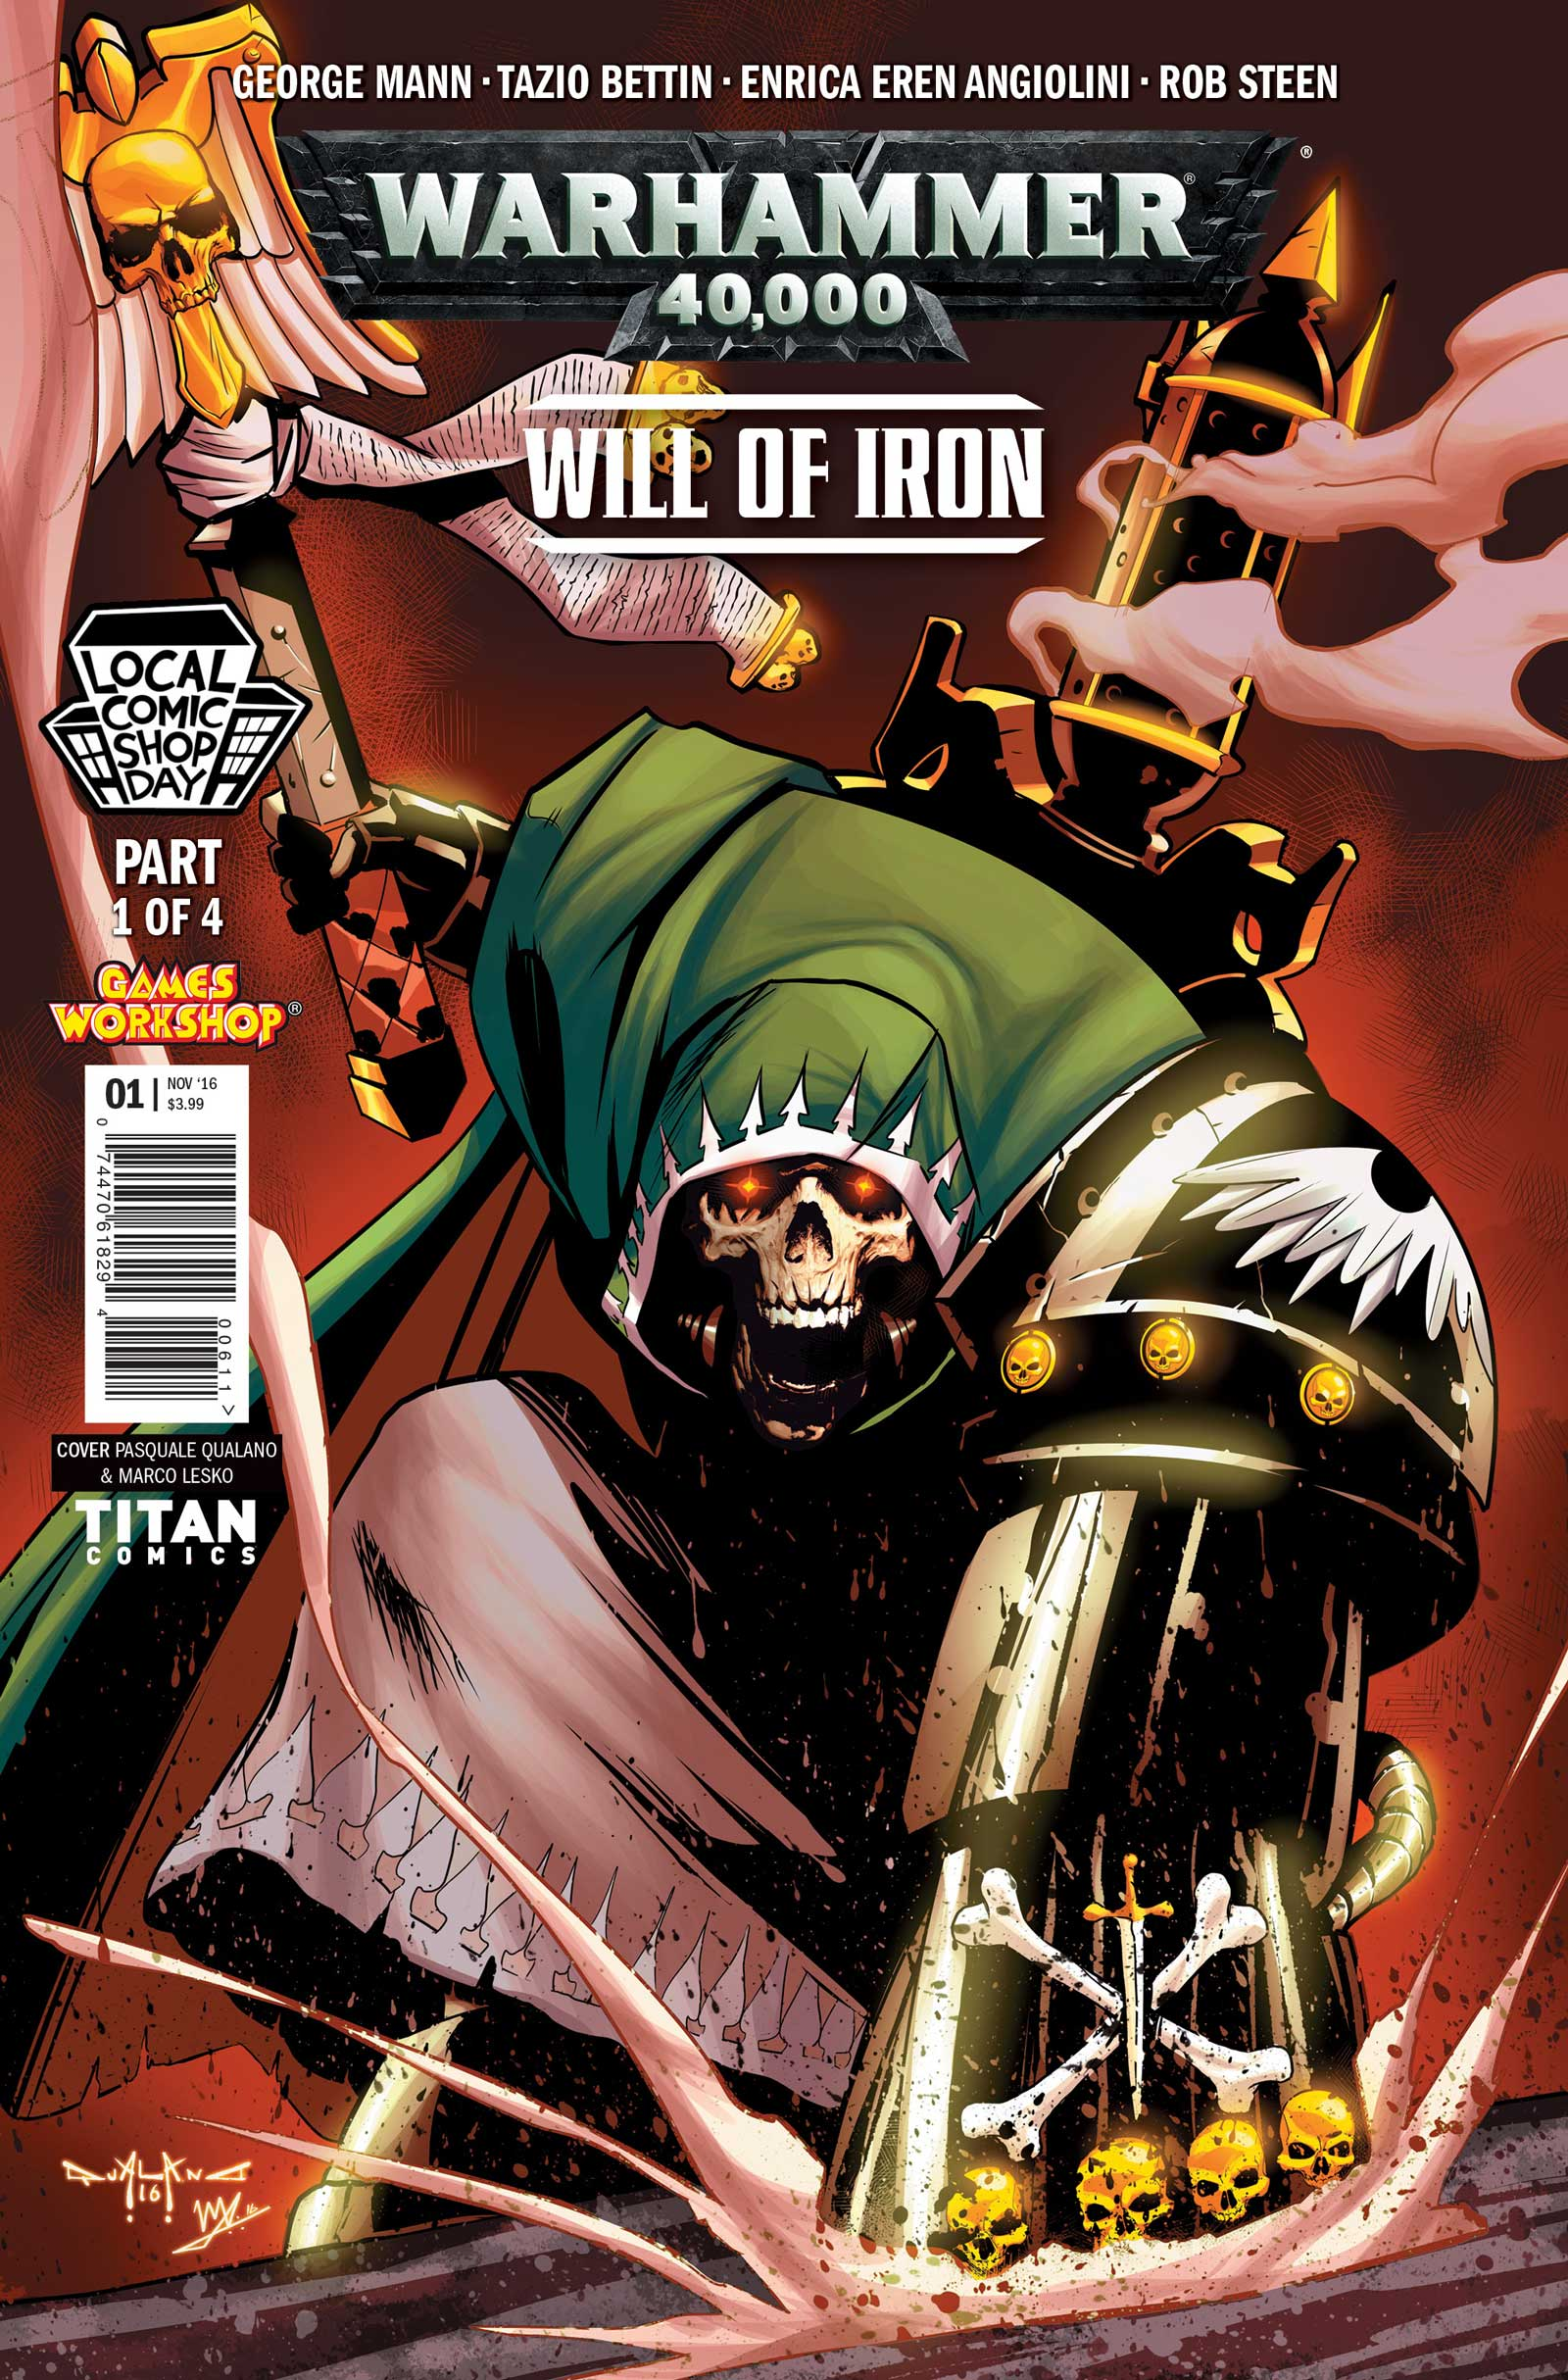 The Local Comic Shop Day variant for​ Warhammer 40,000: Will of Iron​ #1 by Pasquale Qualano and Marco Lesko